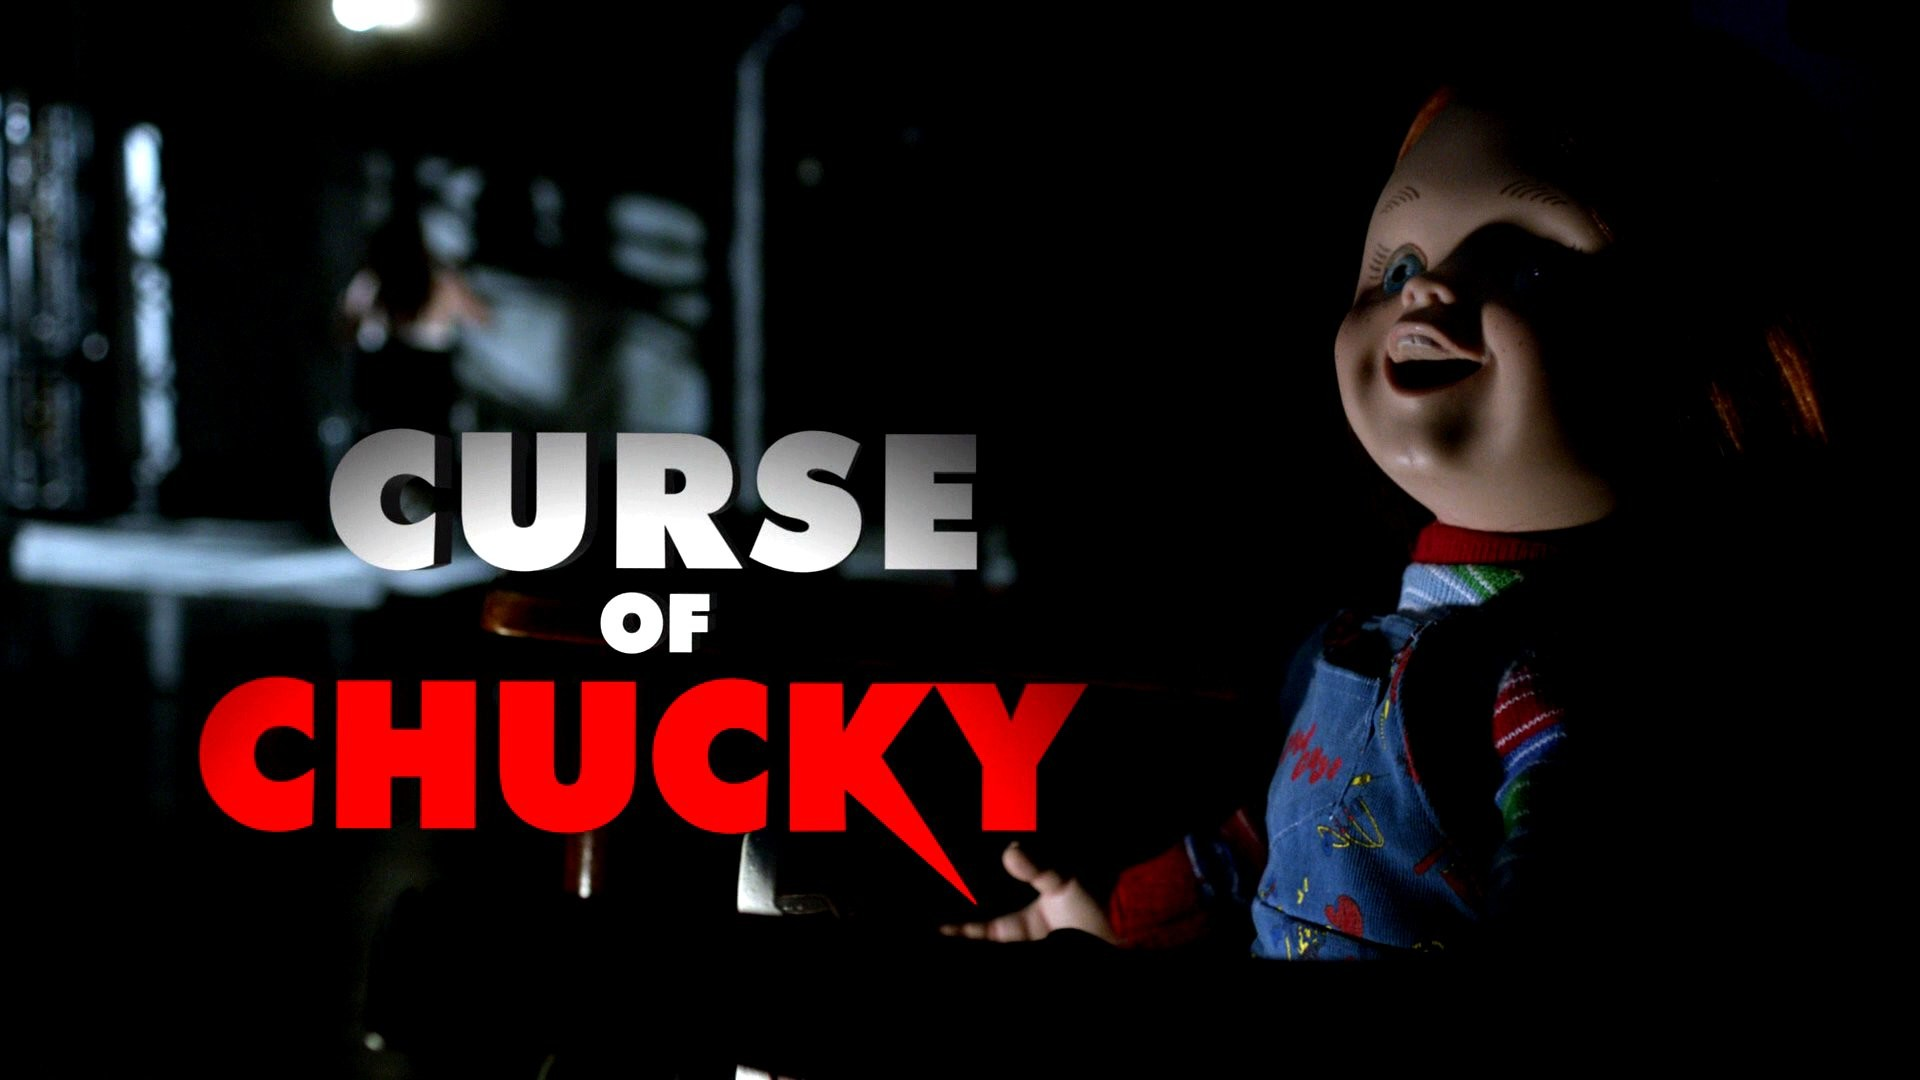 1920x1080 CHILDS PLAY chucky dark horror creepy scary (19) wallpaper |  |  235521 | WallpaperUP